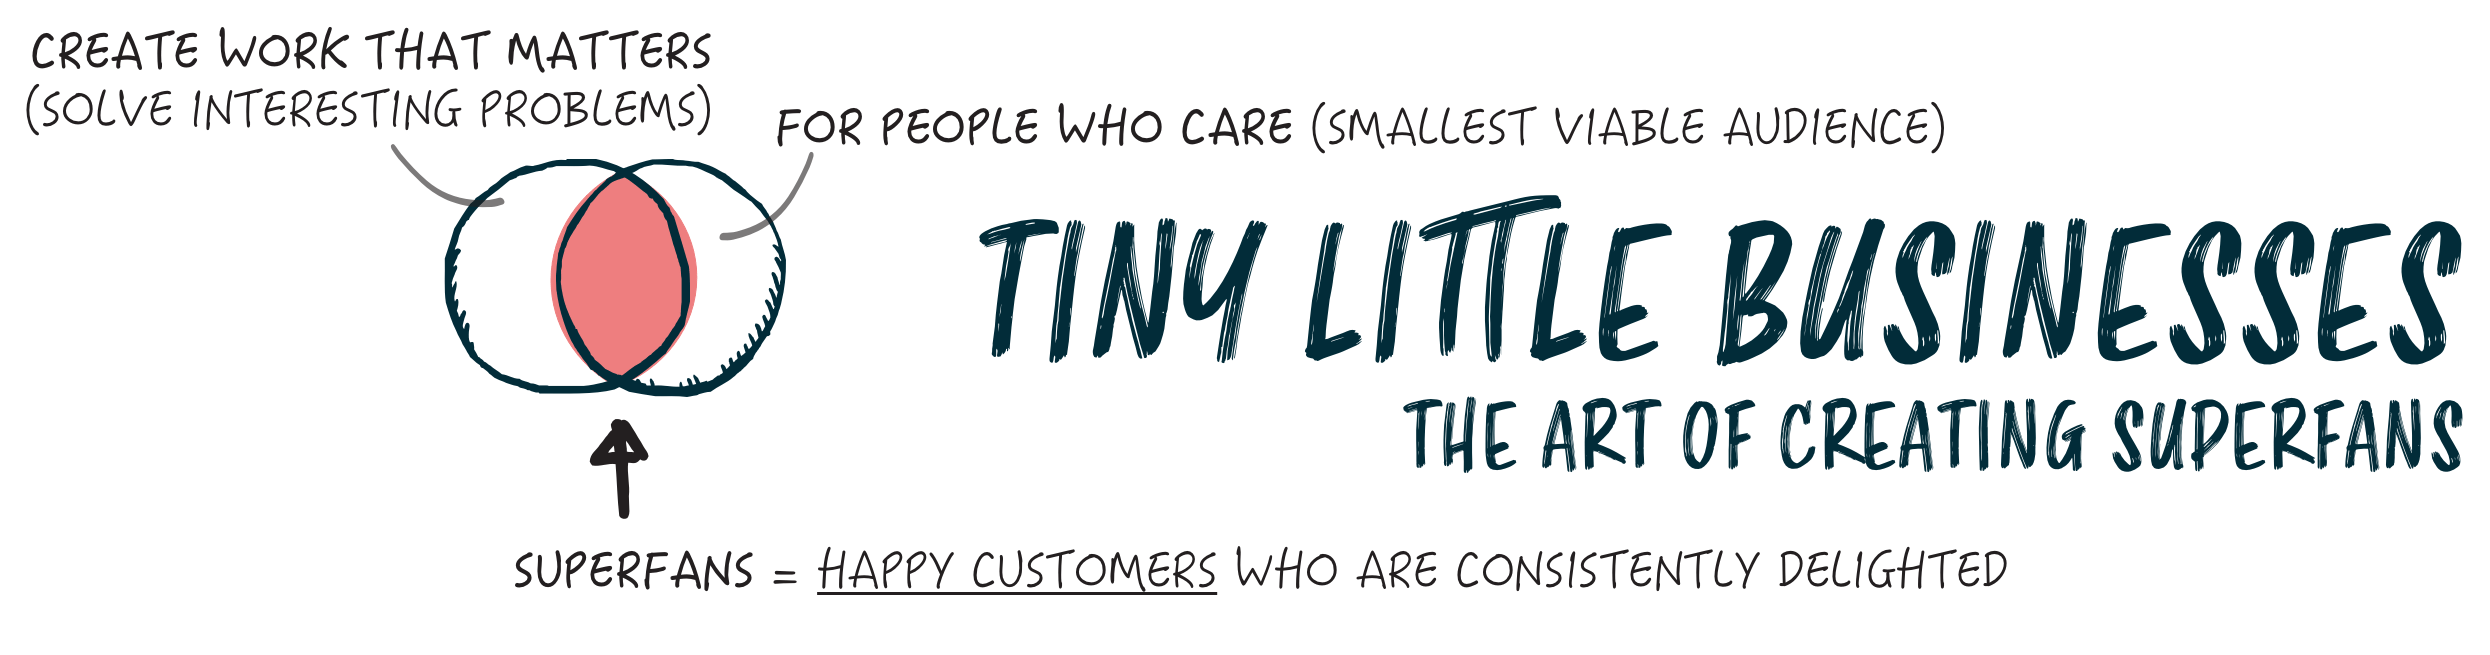 Tiny Little Businesses header image